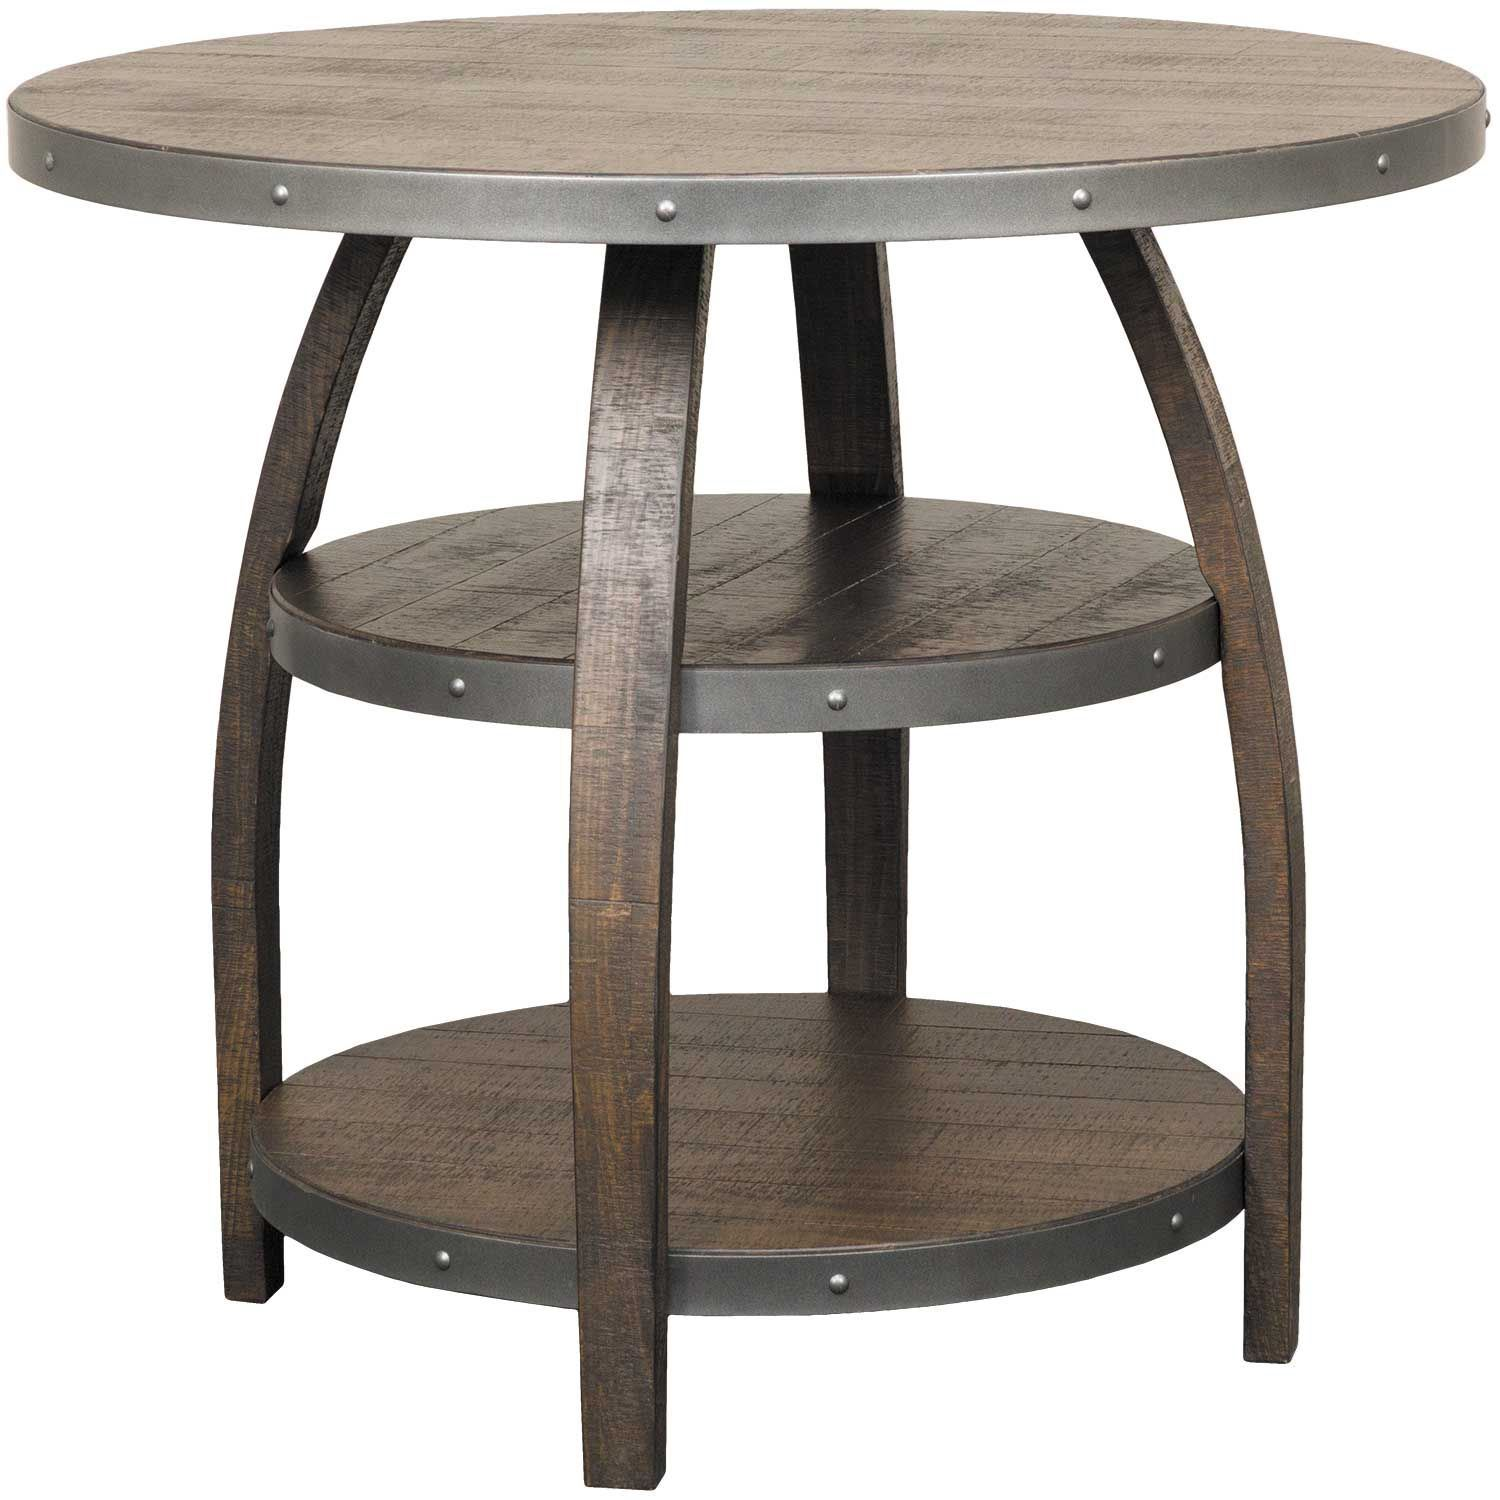 cigar round pub height table 1067tl 42 sunny designs afw. Black Bedroom Furniture Sets. Home Design Ideas